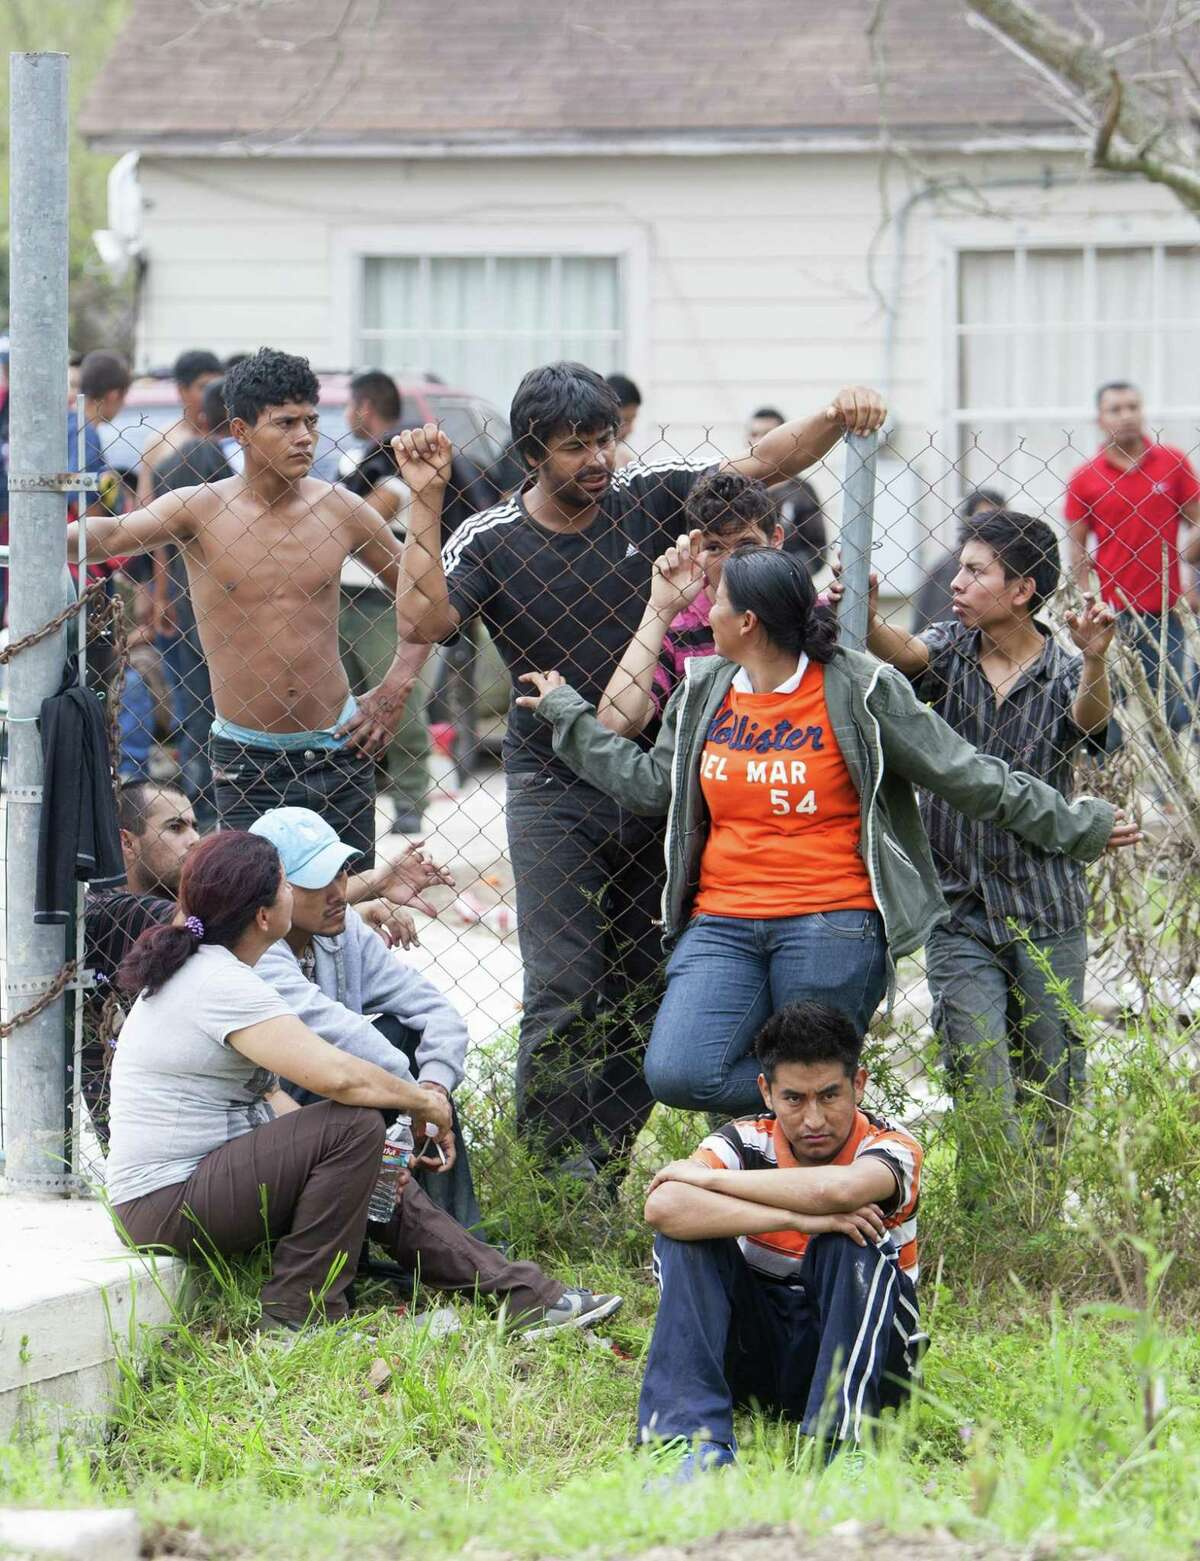 """More than 100 people were found inside a house at 14711 Almeda School Road in Southeast Houston, on March 19, 2014. Police found the group, who are all presumed to be in the country illegally -- at a squalid """"stash house"""" in southeast Houston. Police say it appears to be human smuggling operation."""